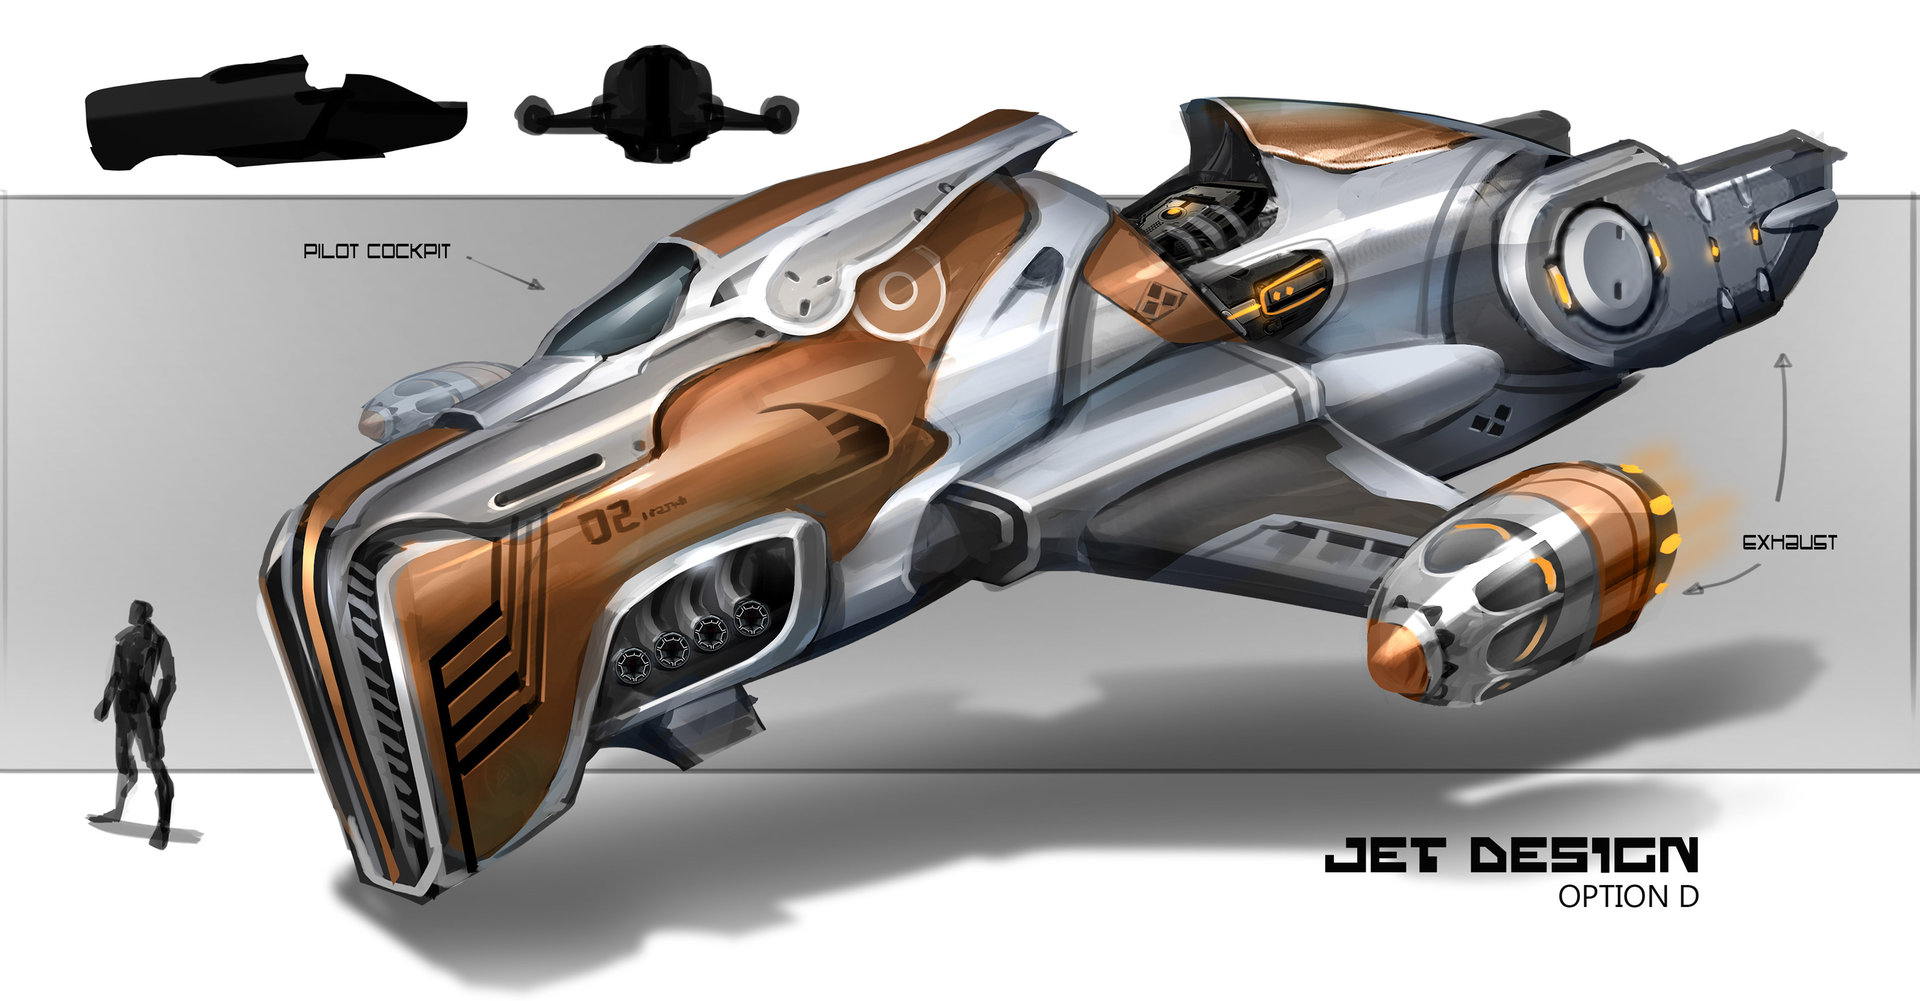 Jeremy chong jet design optiond